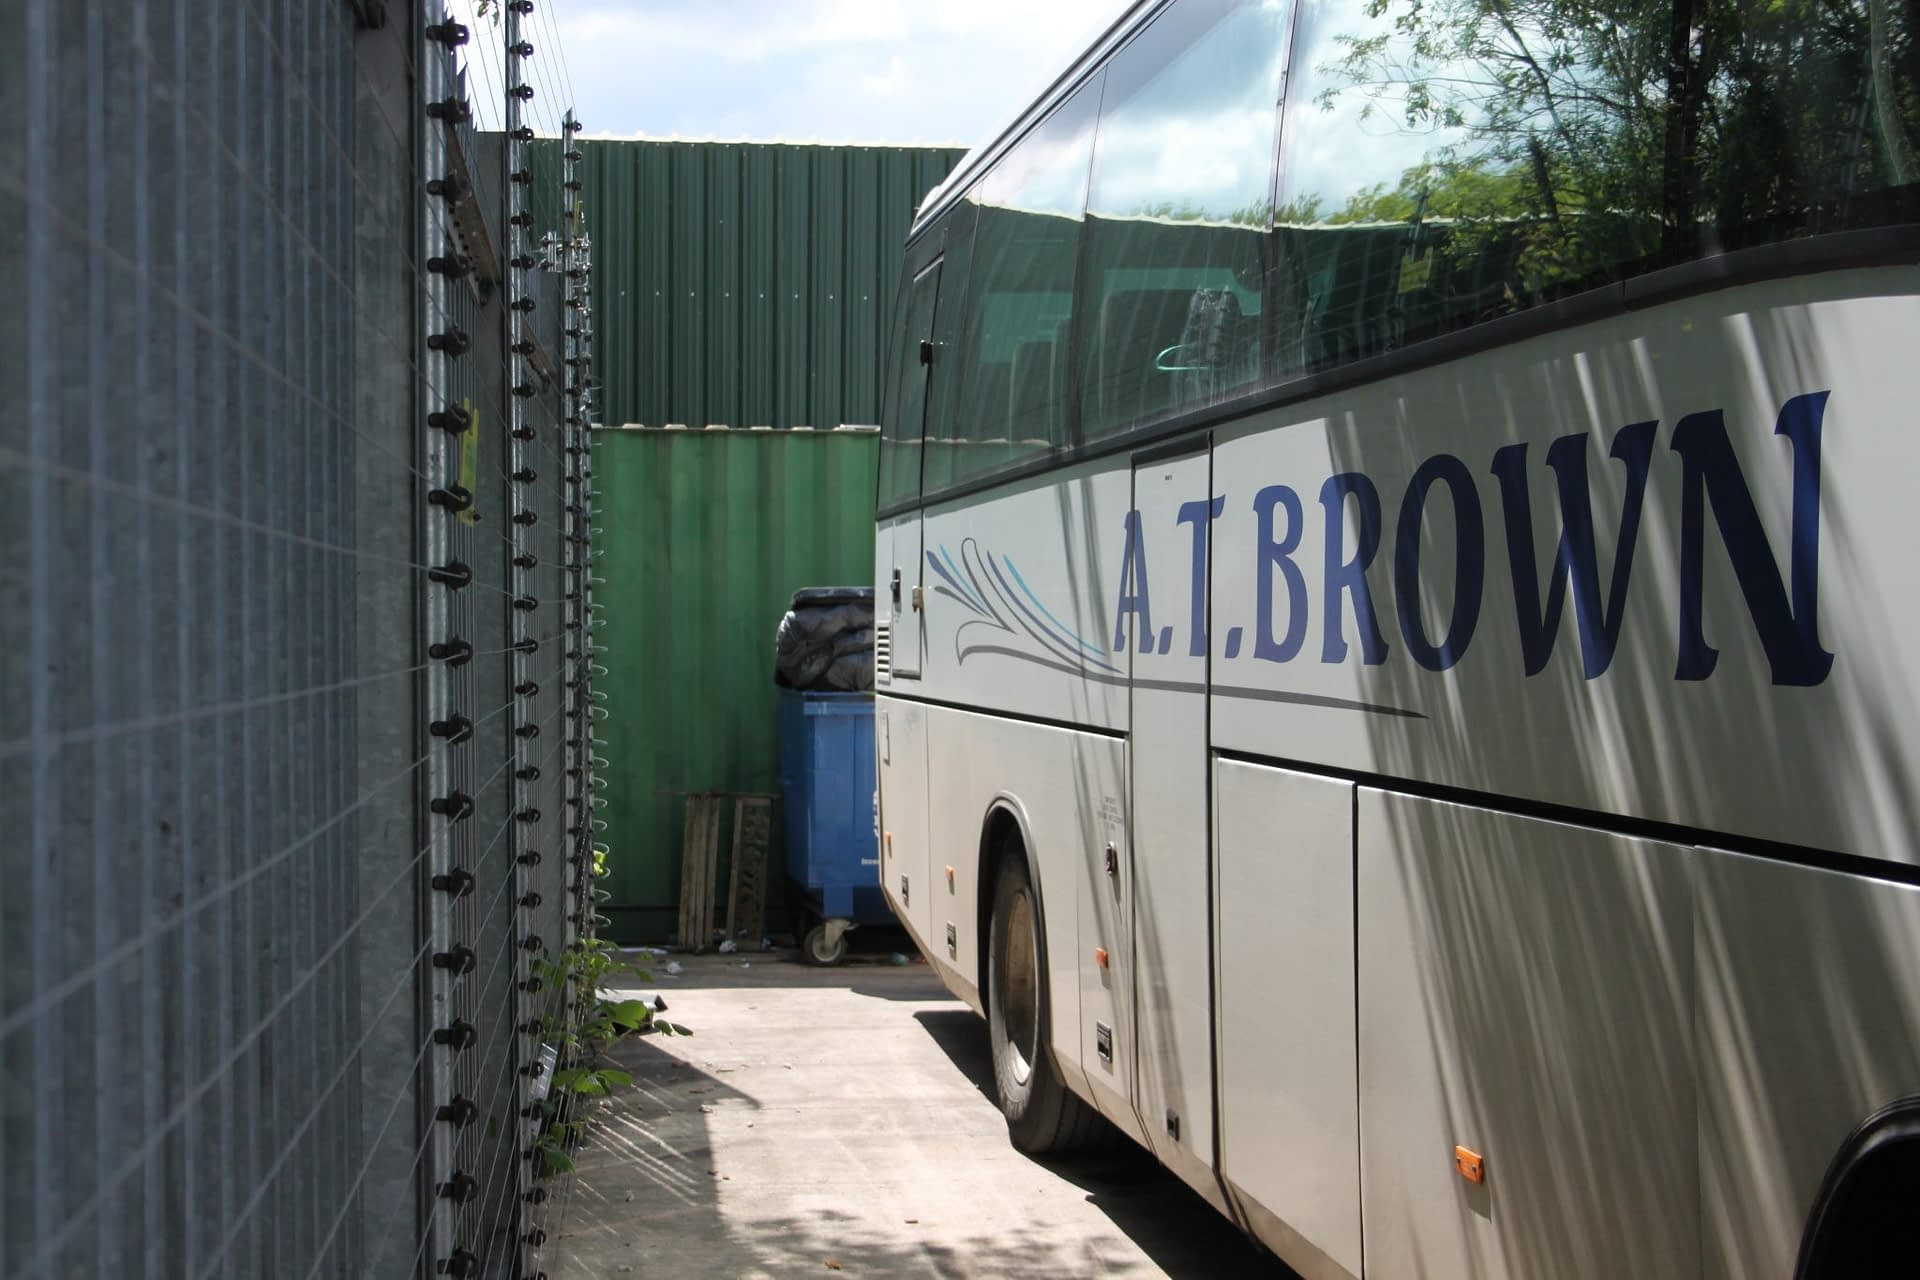 AT Brown (Coaches) Telford (30) (1)